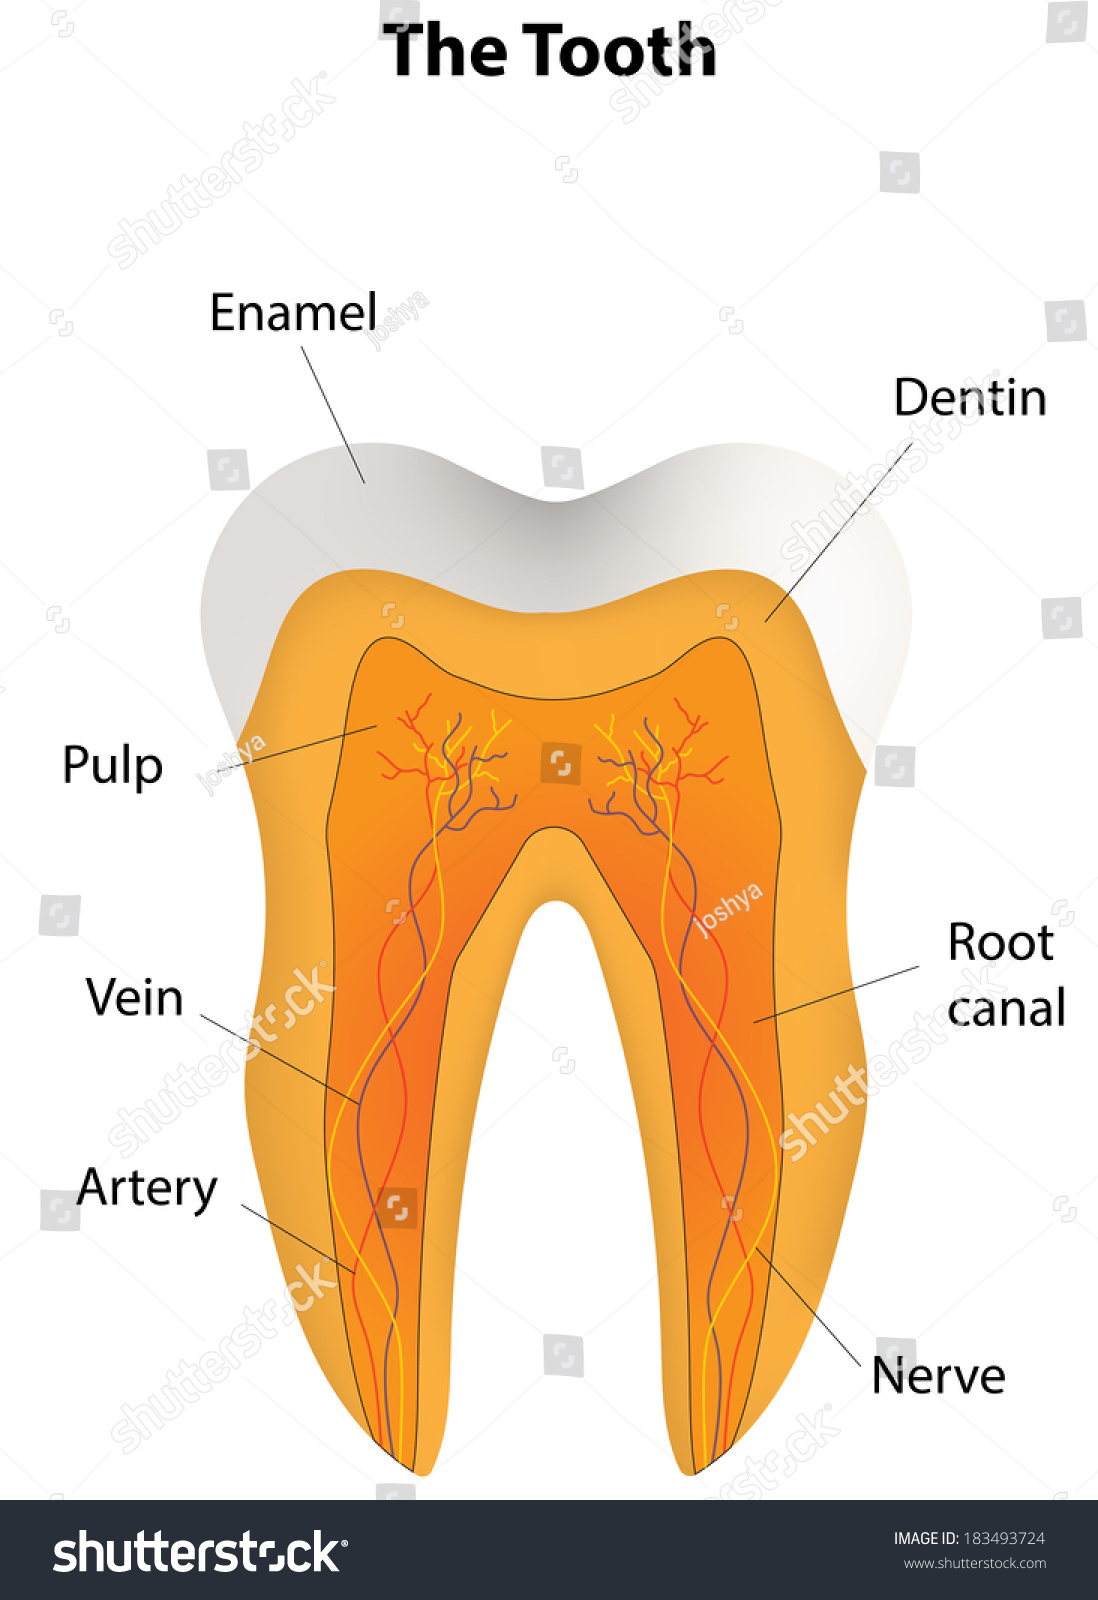 hight resolution of tooth labeled diagram stock vector royalty free 183493724 rh shutterstock com tooth anatomy diagram tooth anatomy diagram